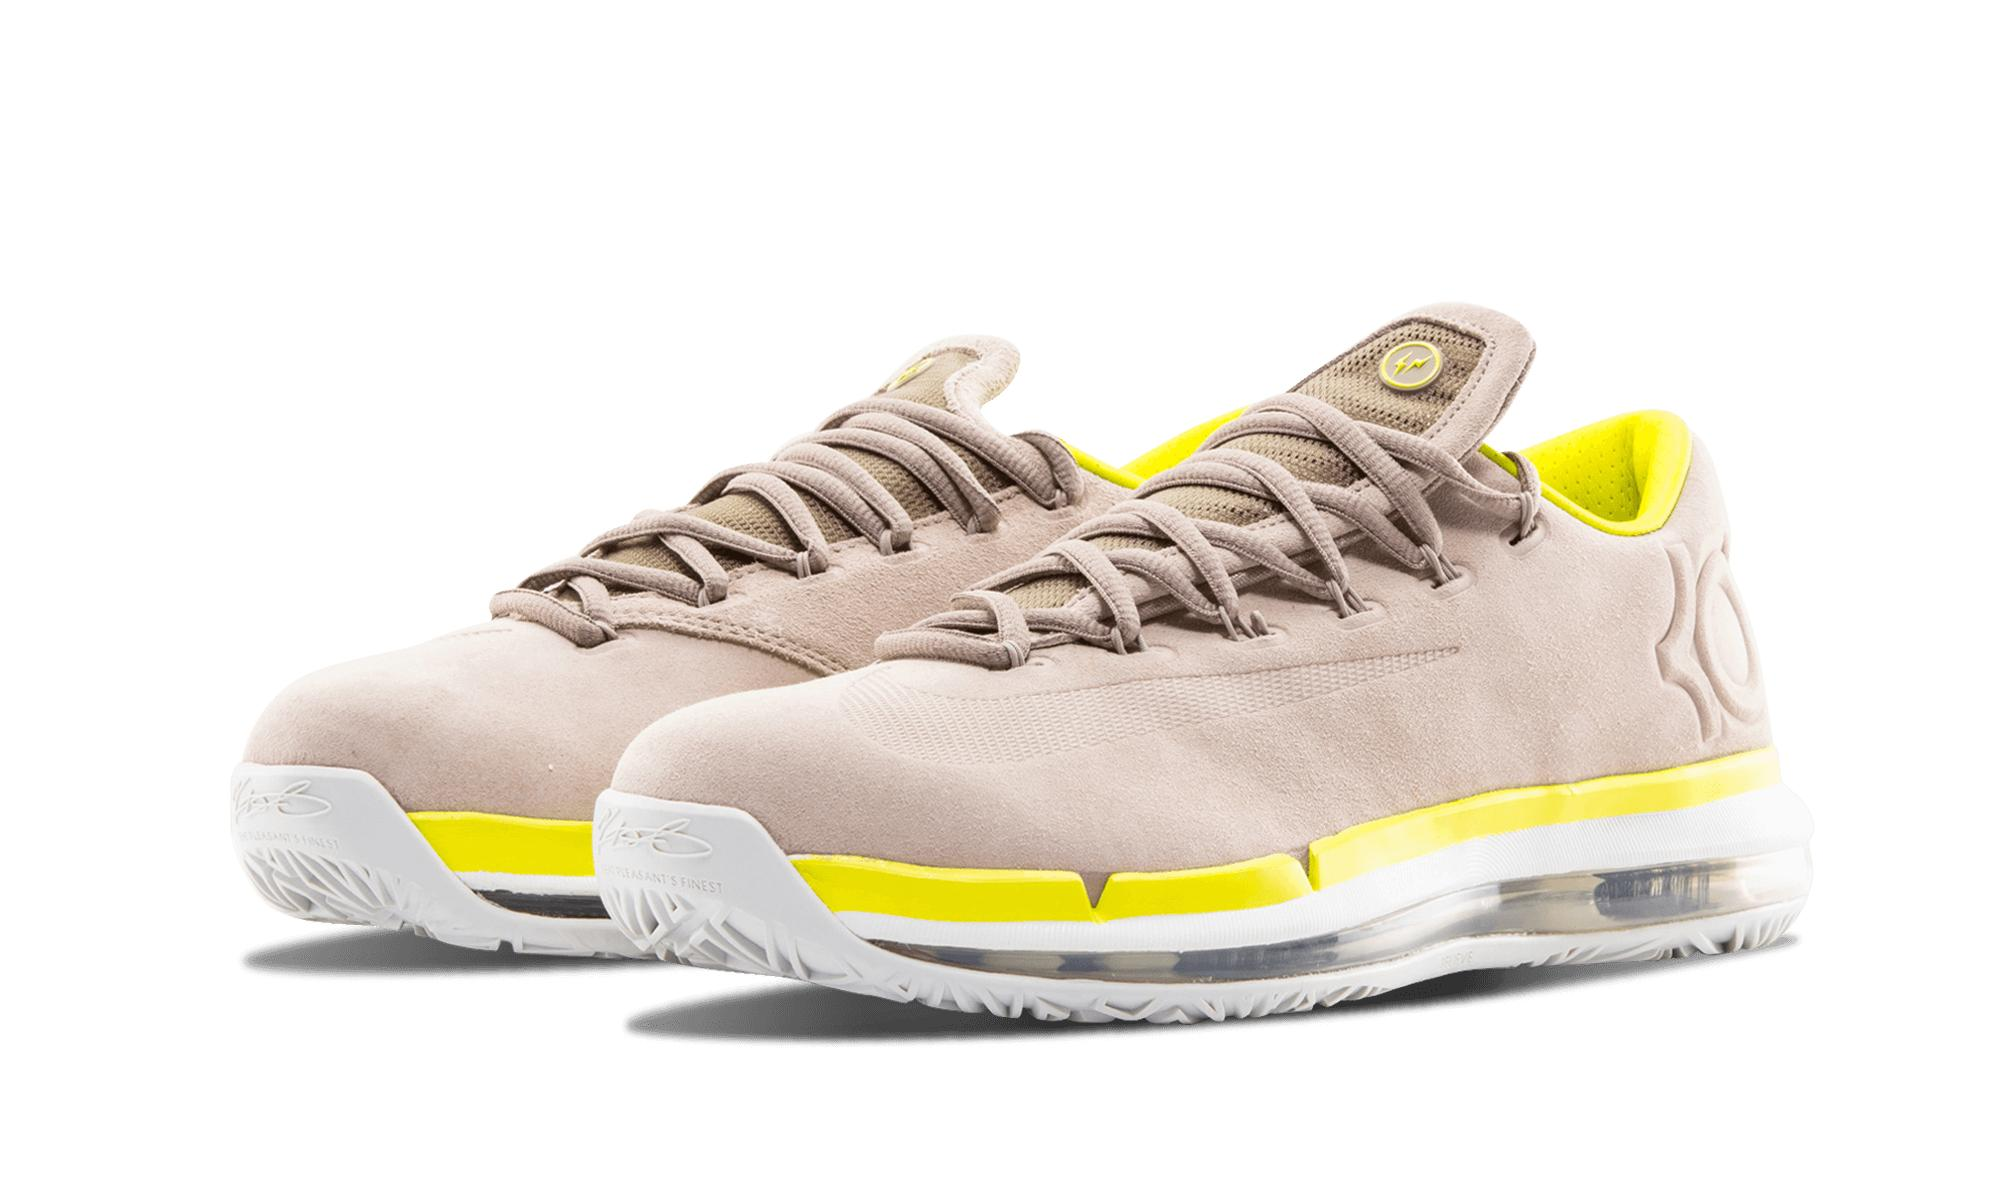 Nike - Multicolor Kd 6 Elite Premium for Men - Lyst. View fullscreen e1f315568